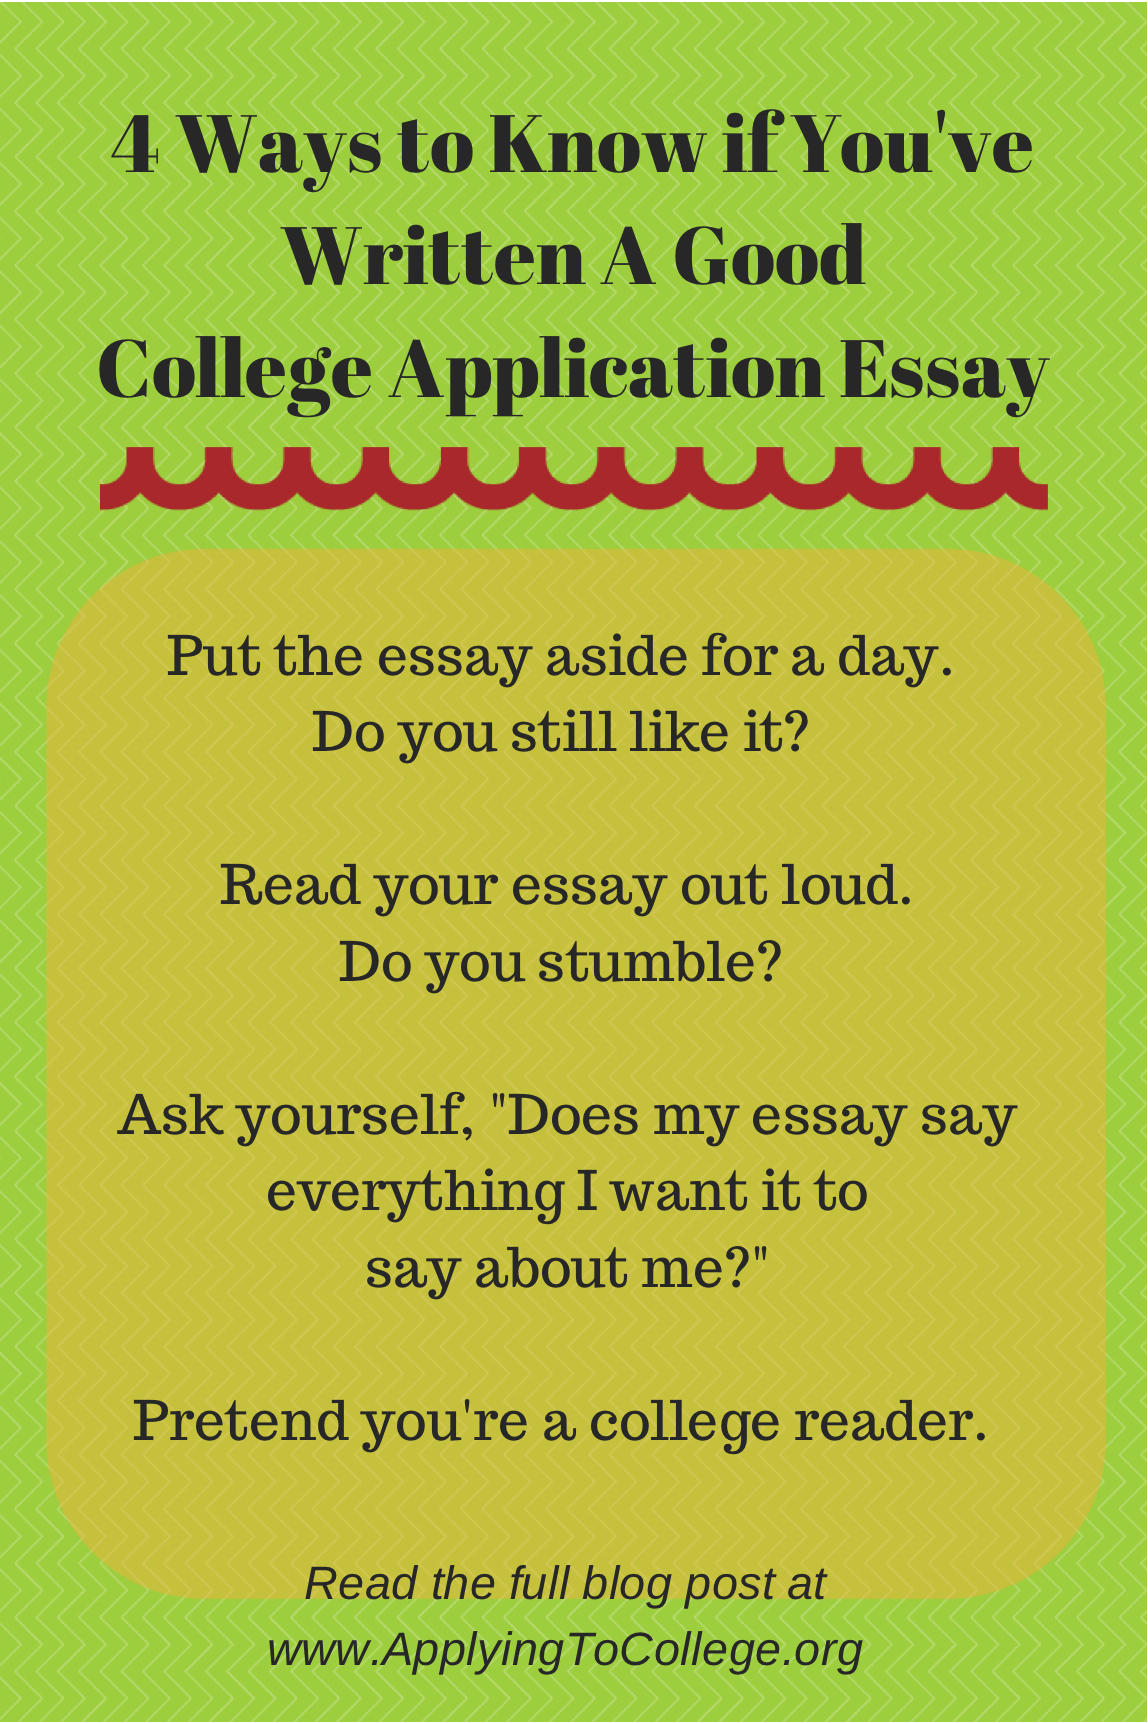 018 Essay Example Help Me Write My 4ways To Know If Youve Written Shocking College For Free App Argumentative Full